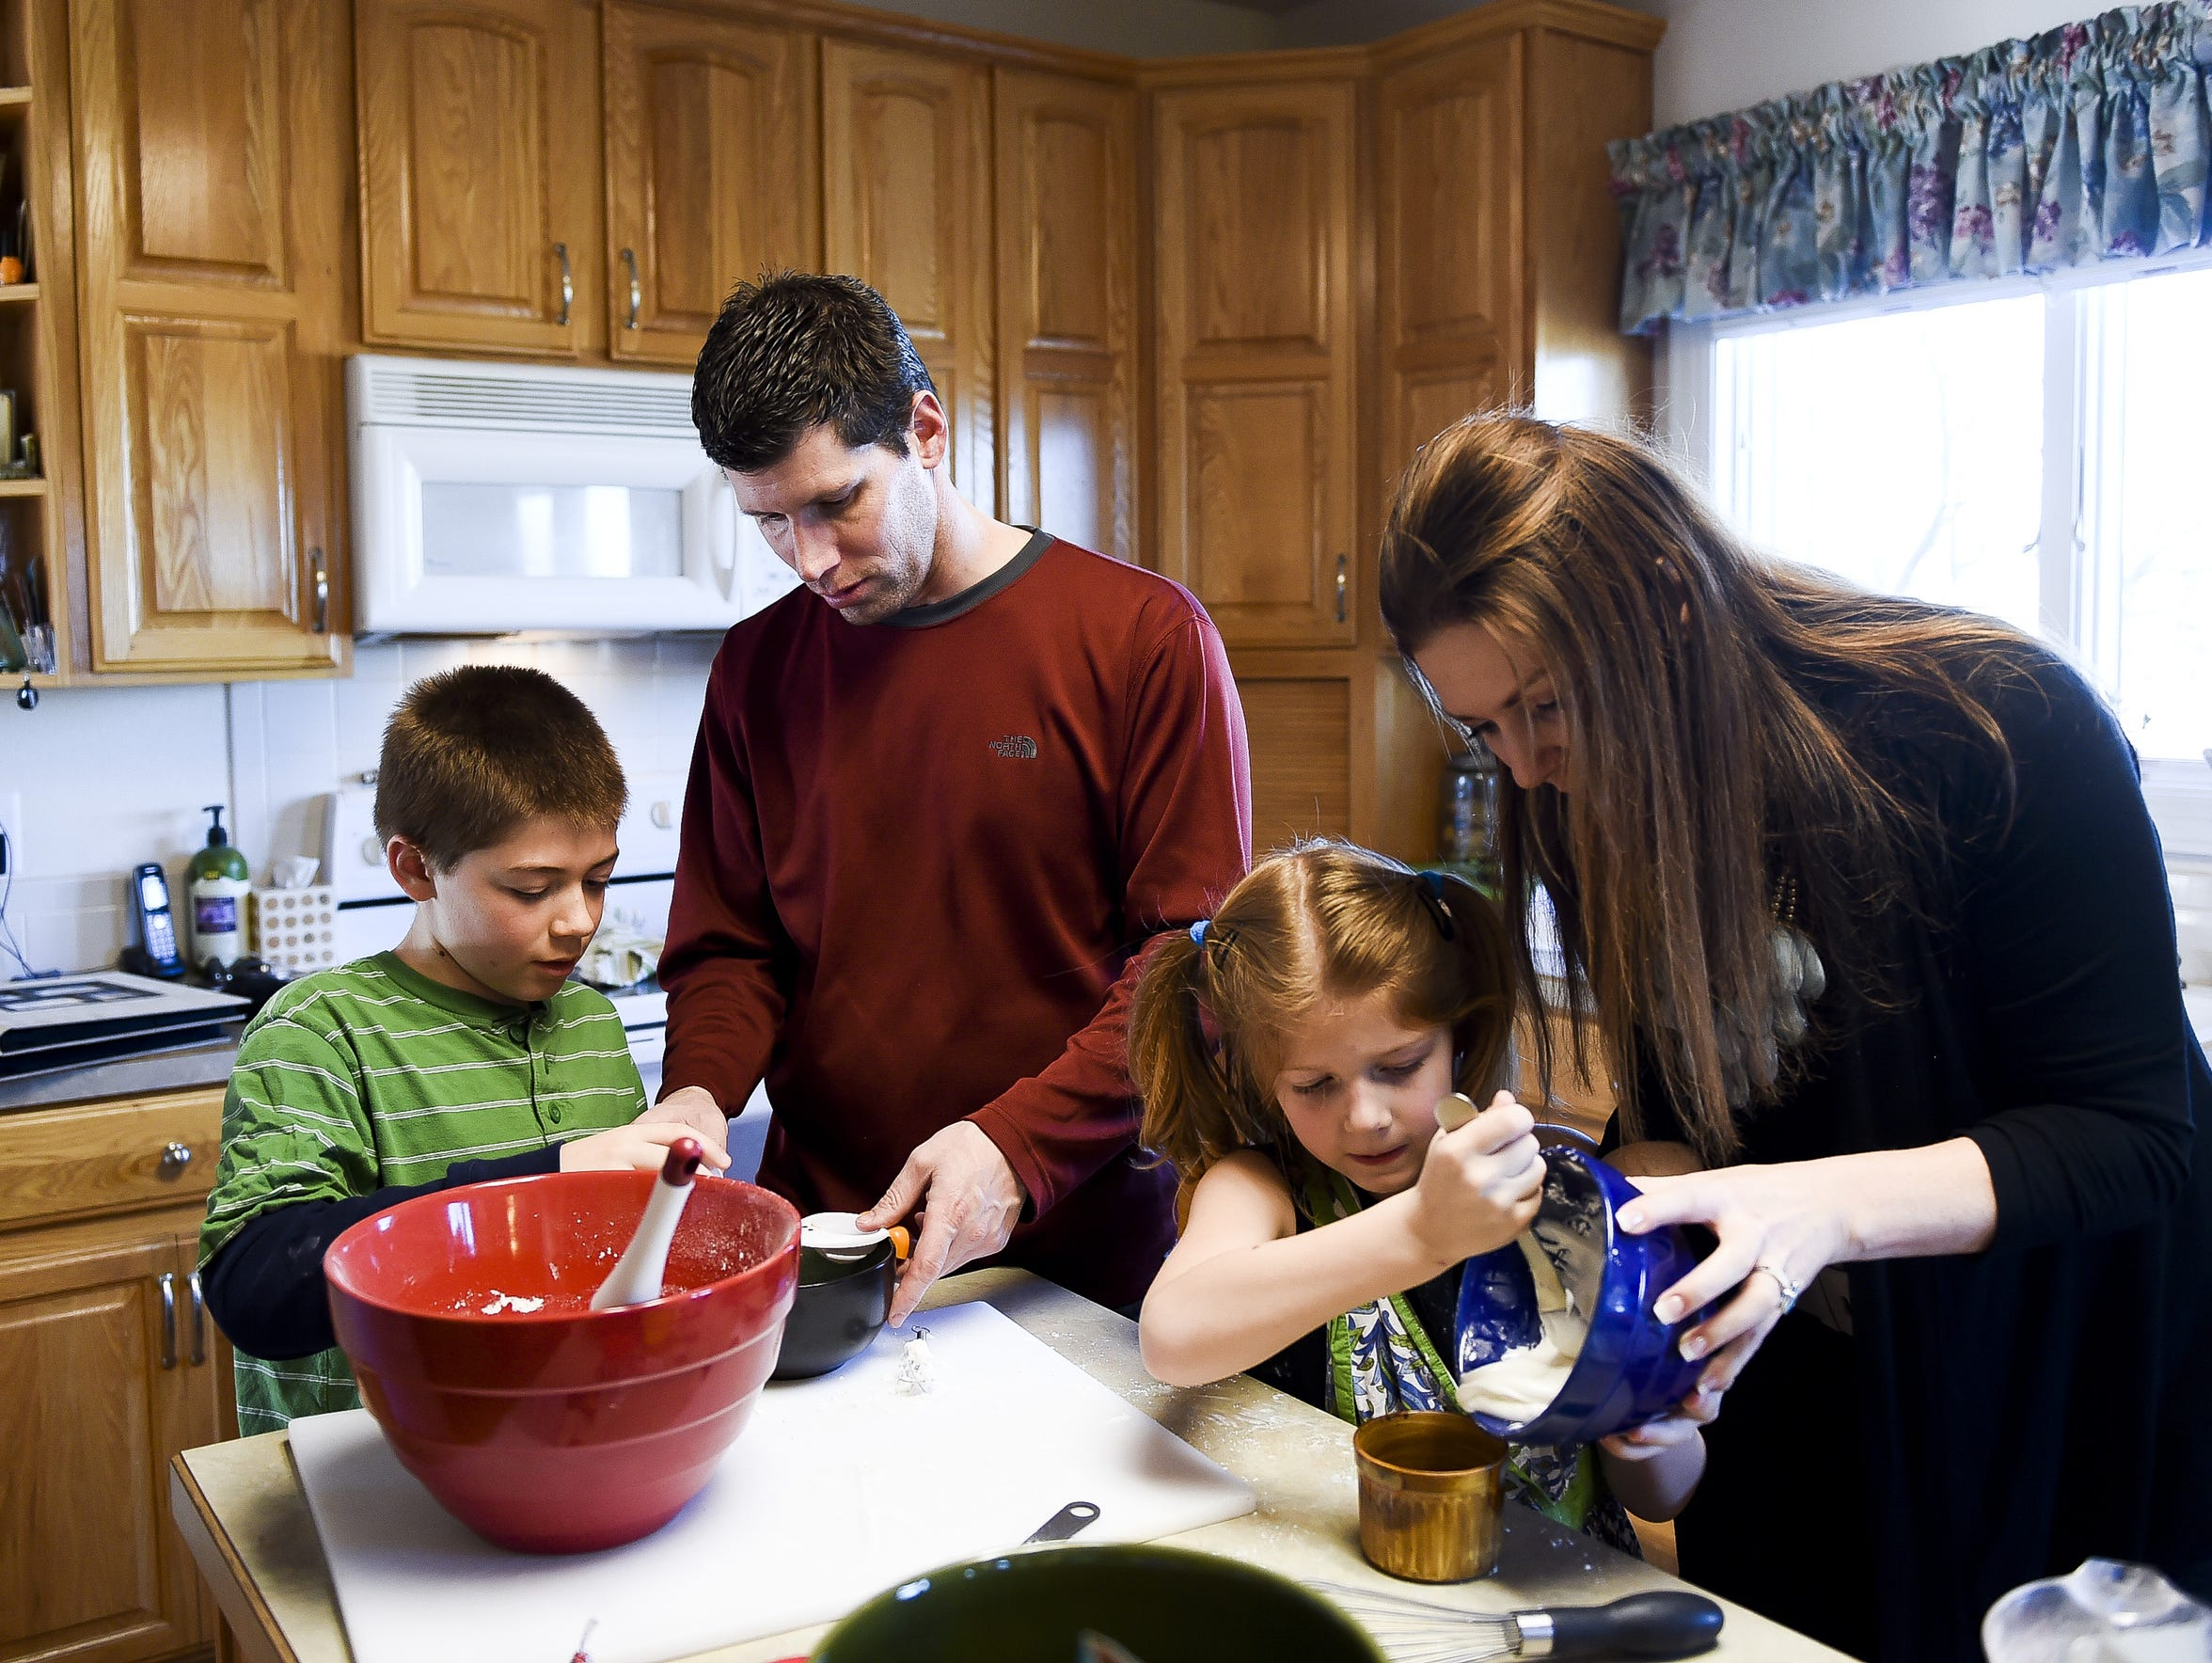 Jeff Wicks makes cookies with his two children Bryce